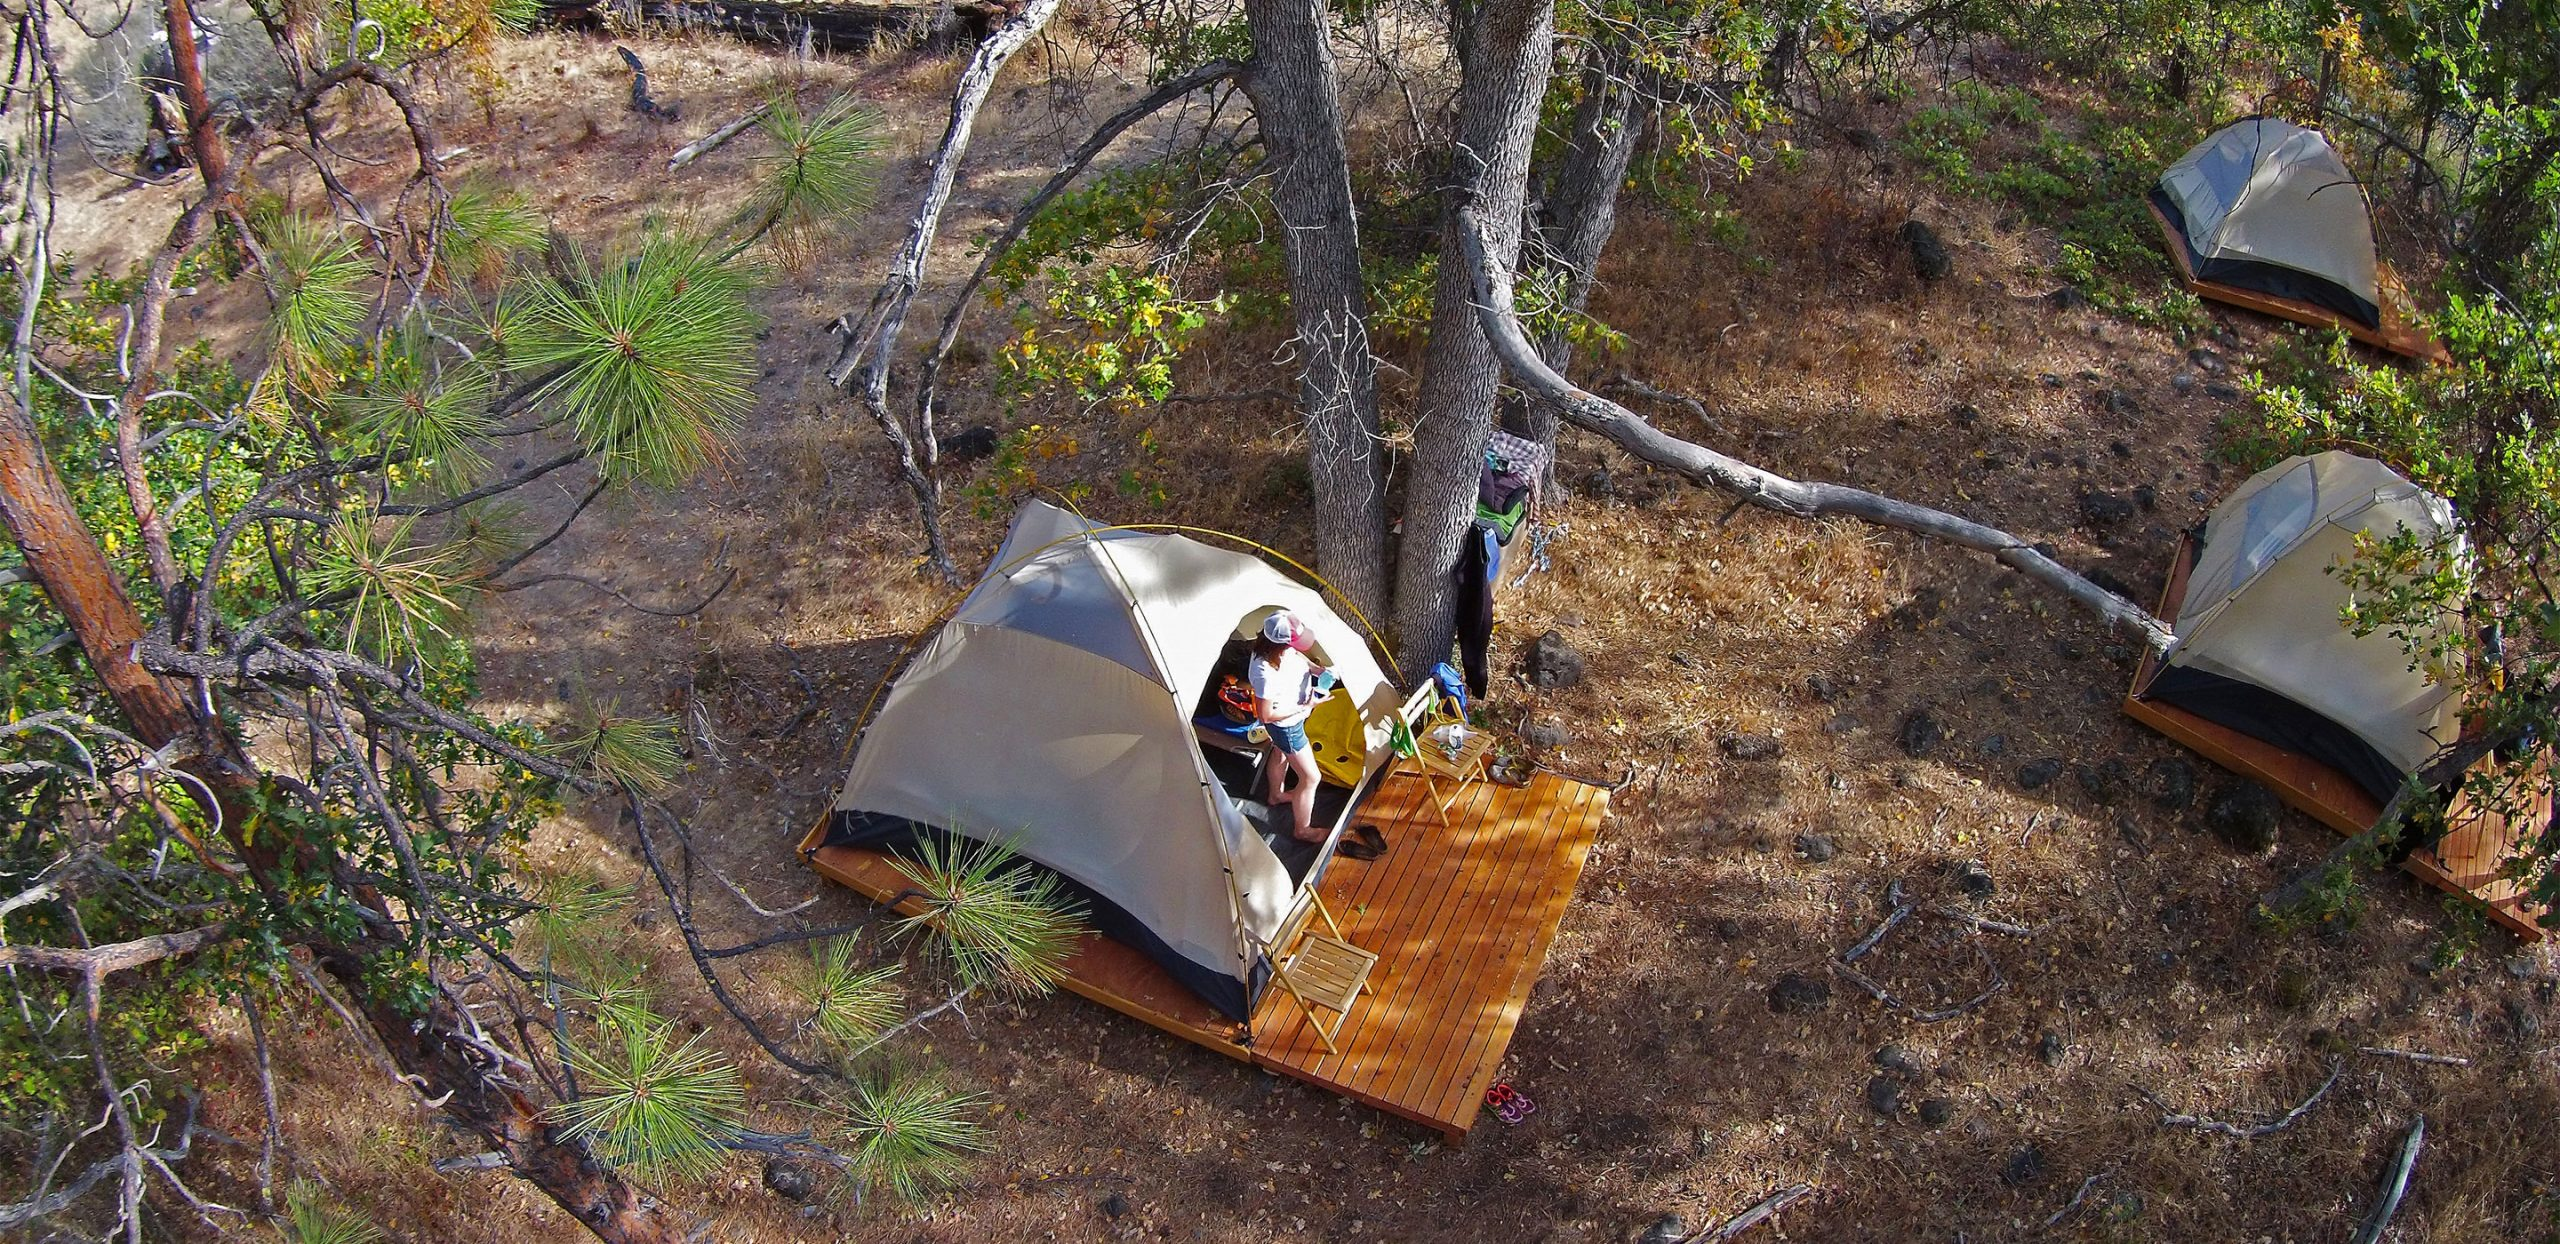 Upper Klamath Rafting Safari - Glamping - Tents